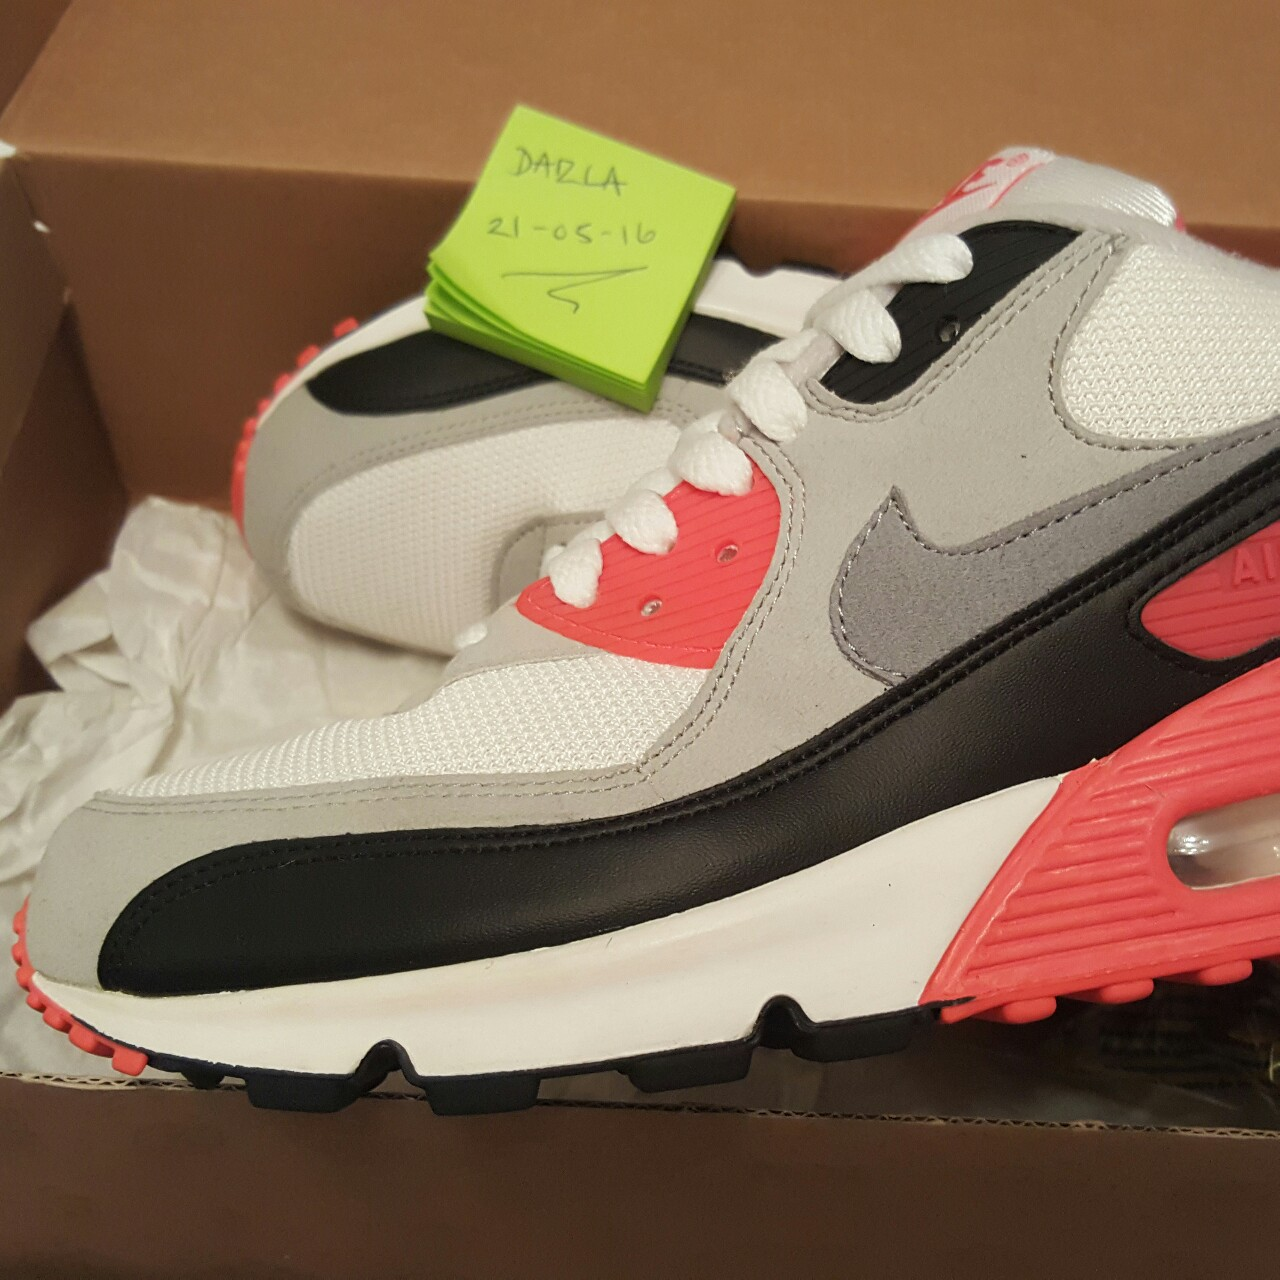 Nike Air Max 90 Og ' Infrared' With Discount Prices